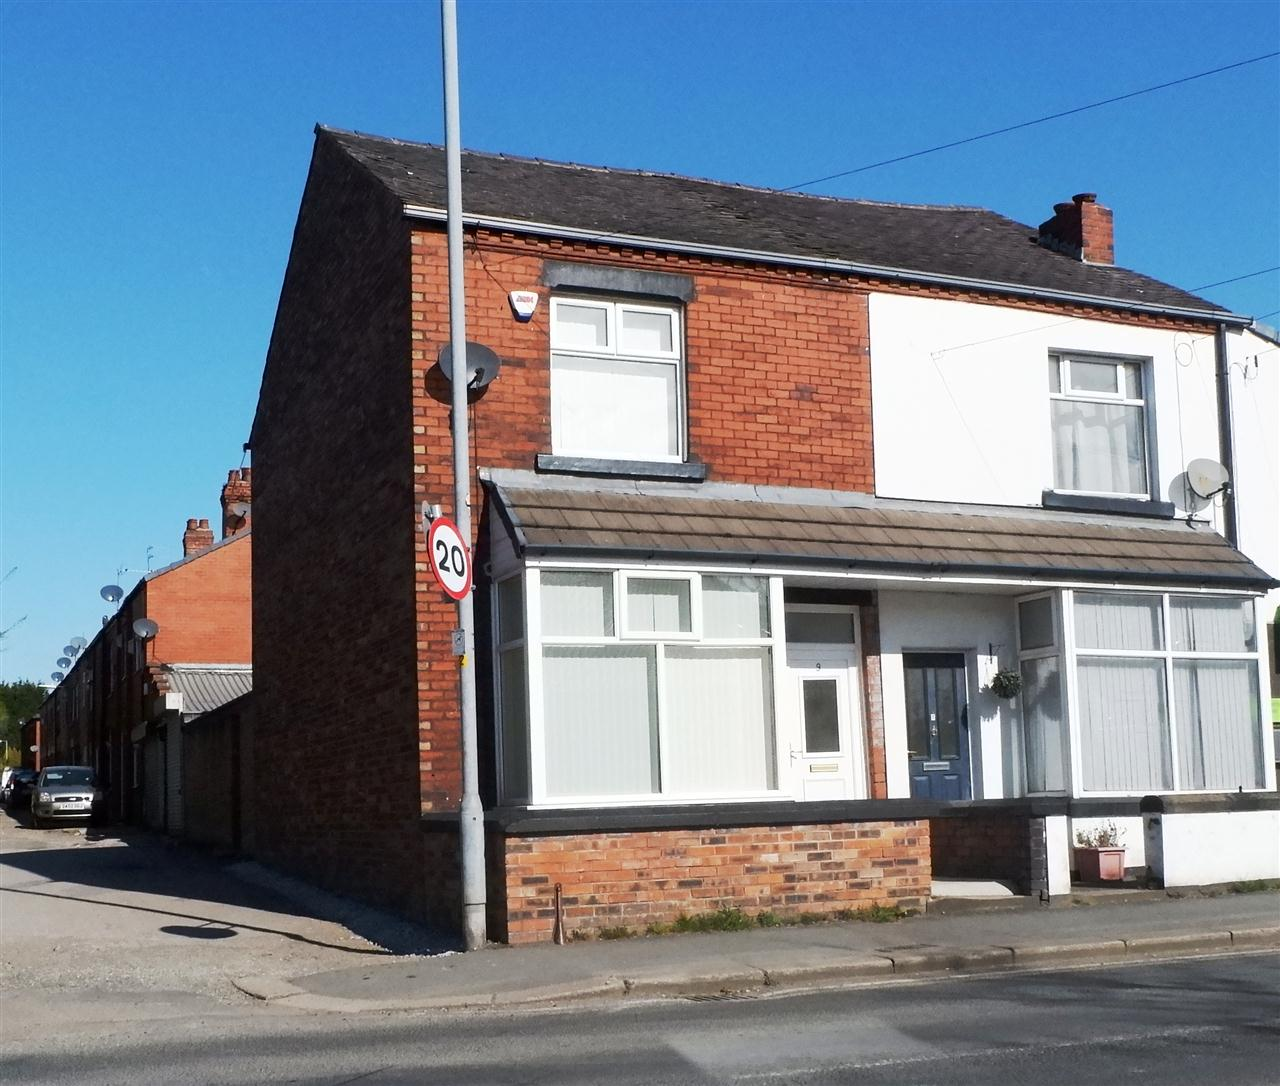 3 bed end-of-terrace for sale in Mason St, Horwich - Property Image 1